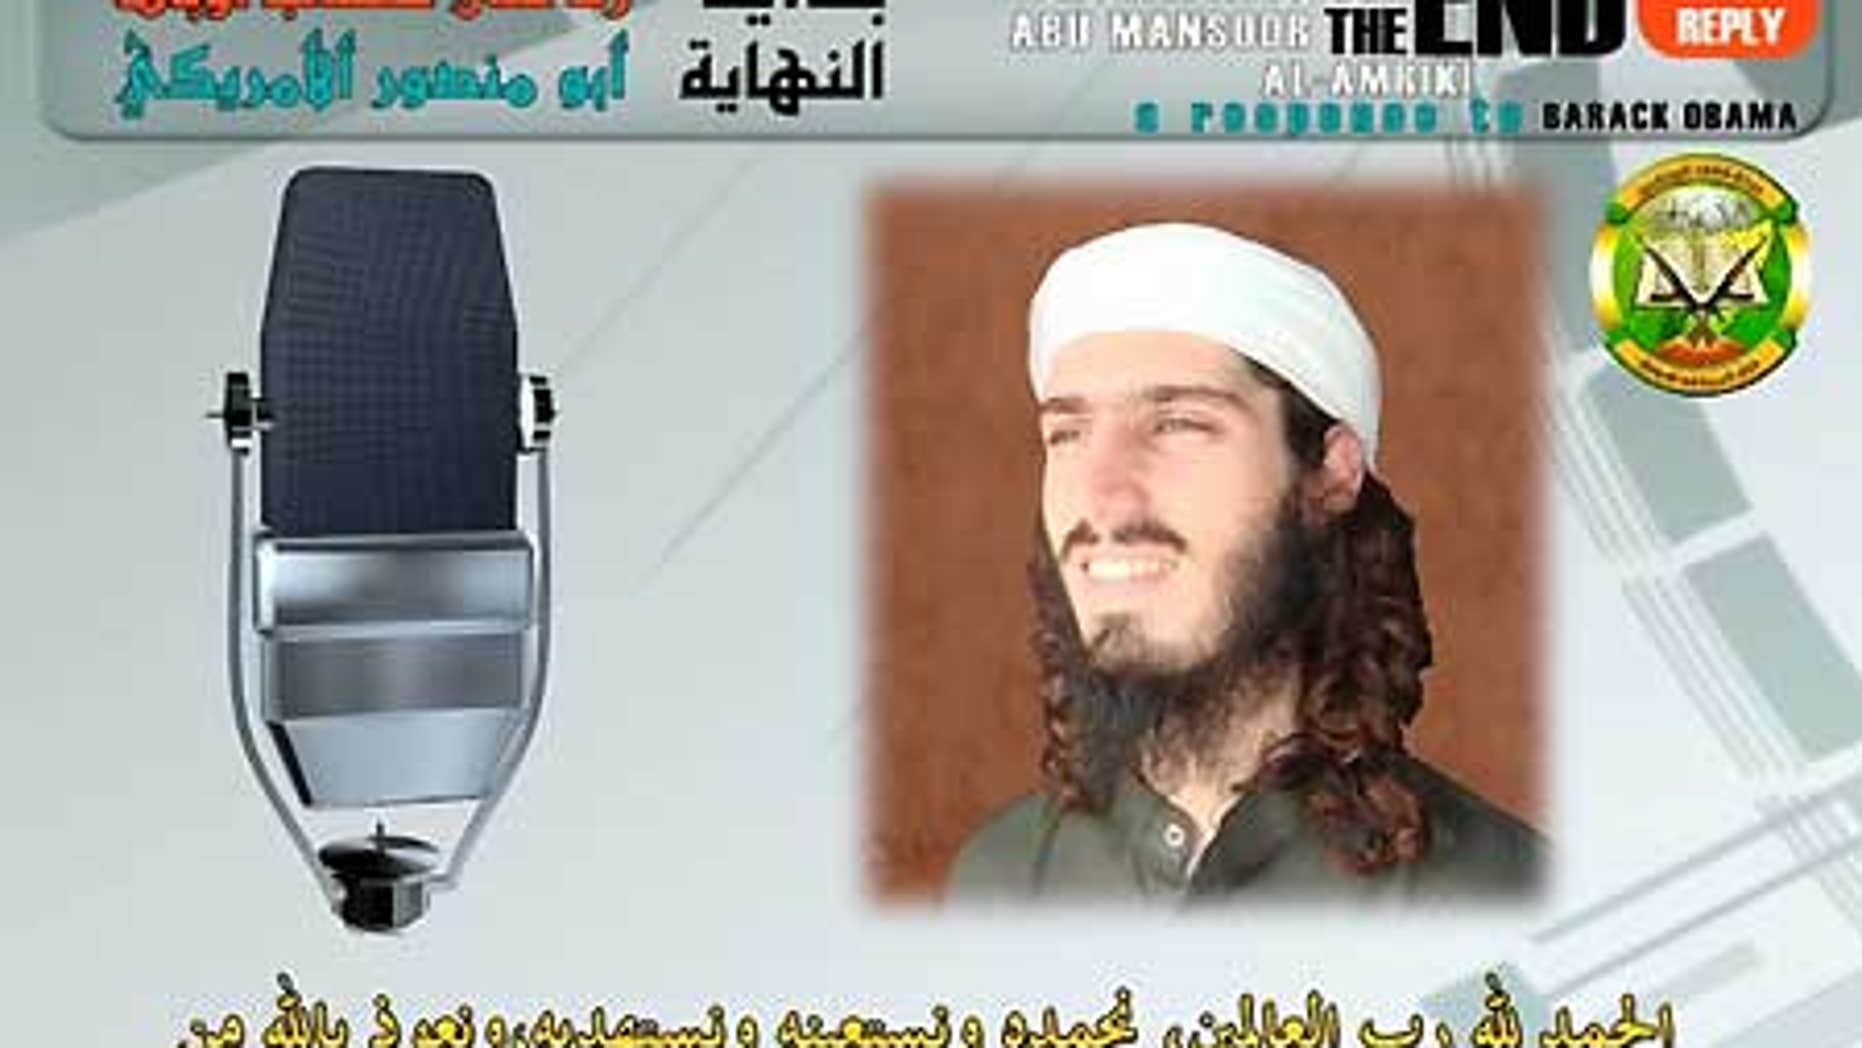 A still image accompanying a new audio tape from Abu Mansour al-Amriki, a member of the Al Qaeda-linked Somali terrorist group al-Shabaab.